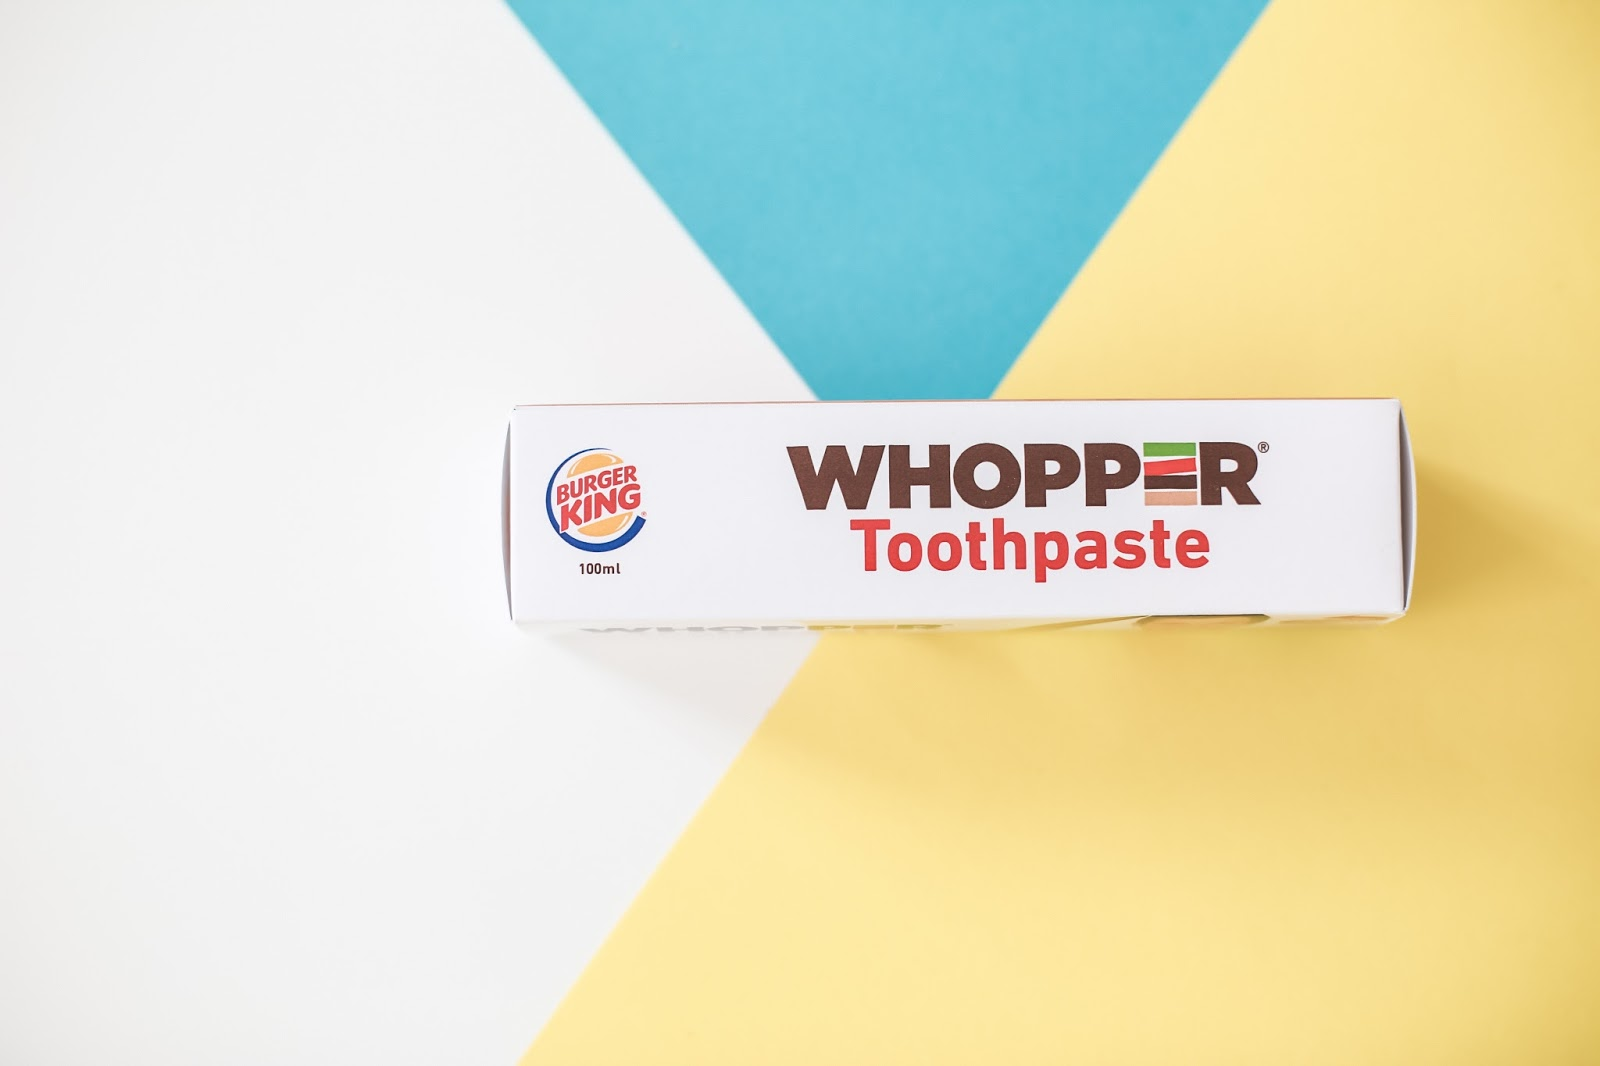 burger king dentifrice goût whopper